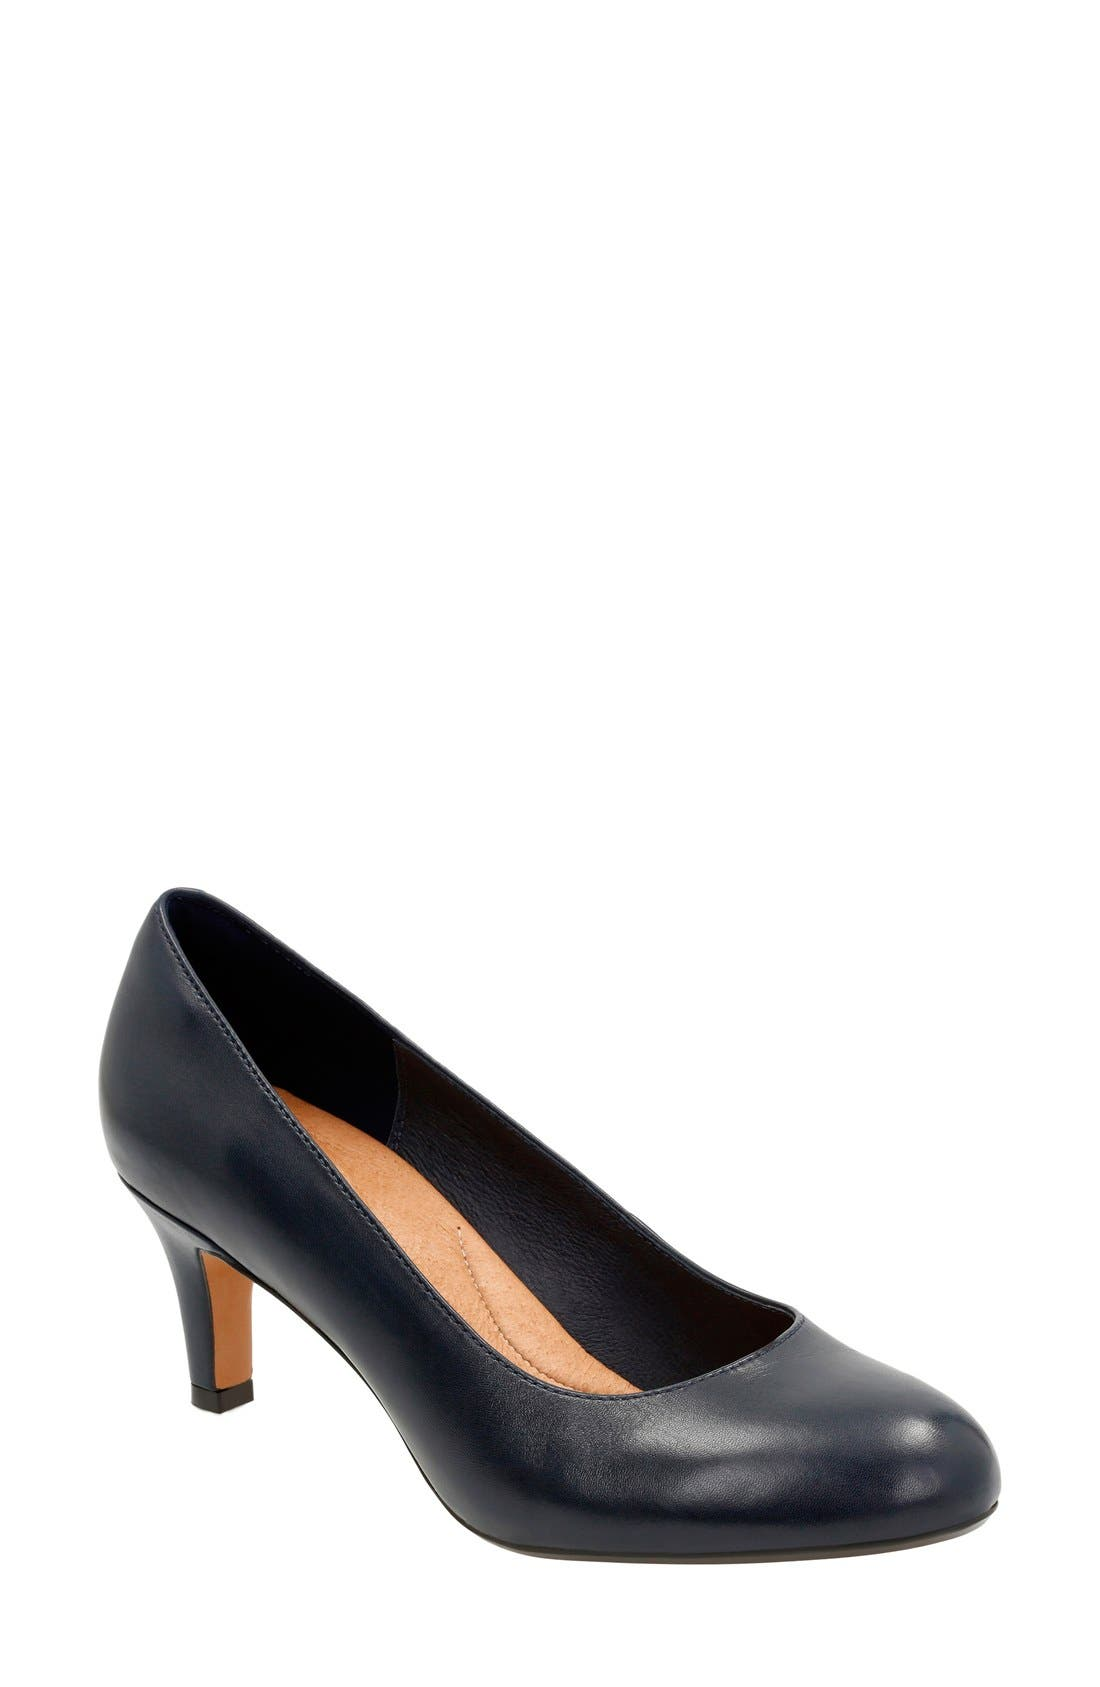 'Heavenly Heart' Pump,                         Main,                         color, Navy Leather